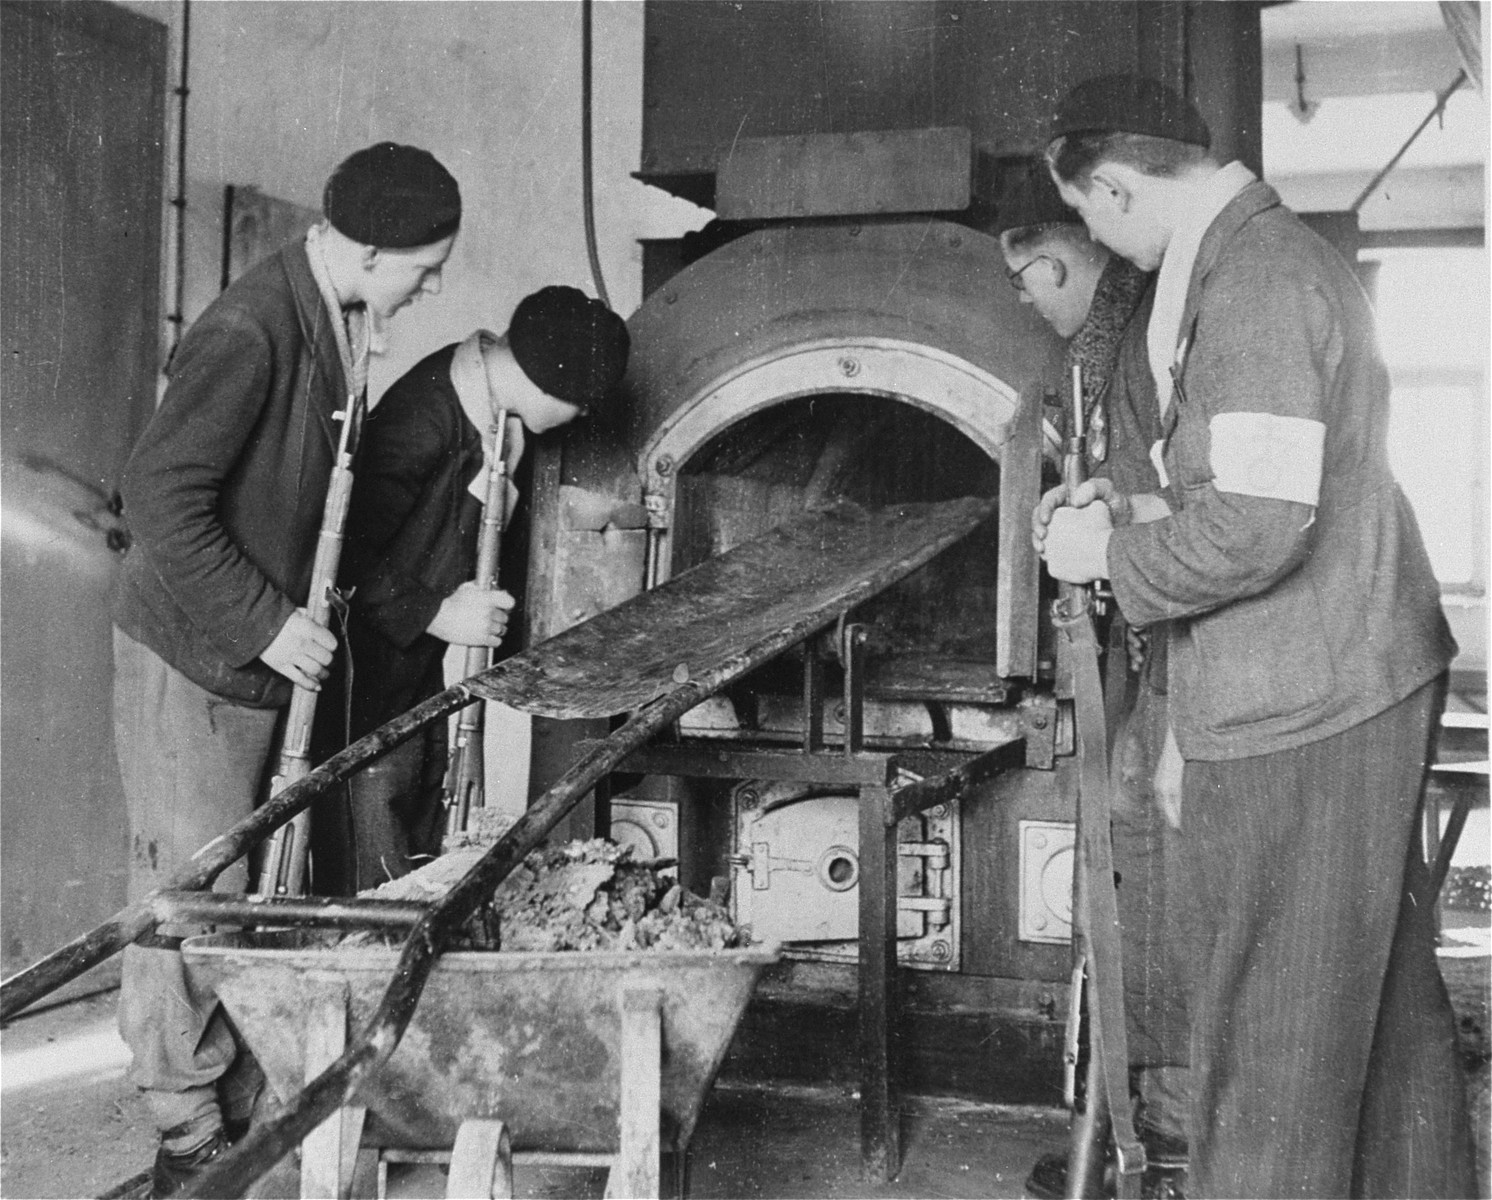 Members of the French resistance inspect the crematorium furnace in Natzweiler-Struthof.